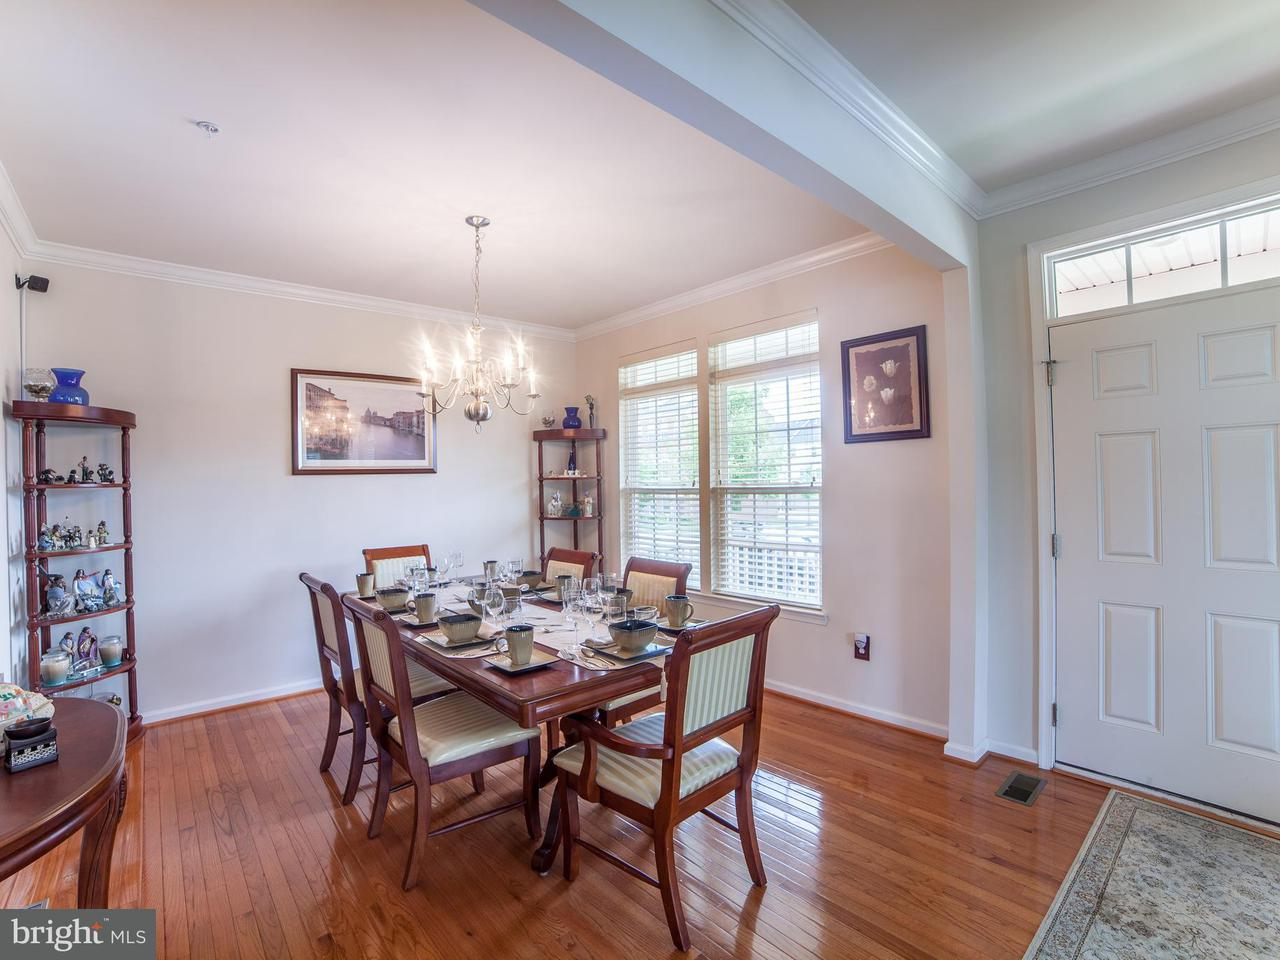 Single Family Home for Sale at 6233 WALBRIDGE Street 6233 WALBRIDGE Street Capitol Heights, Maryland 20743 United States